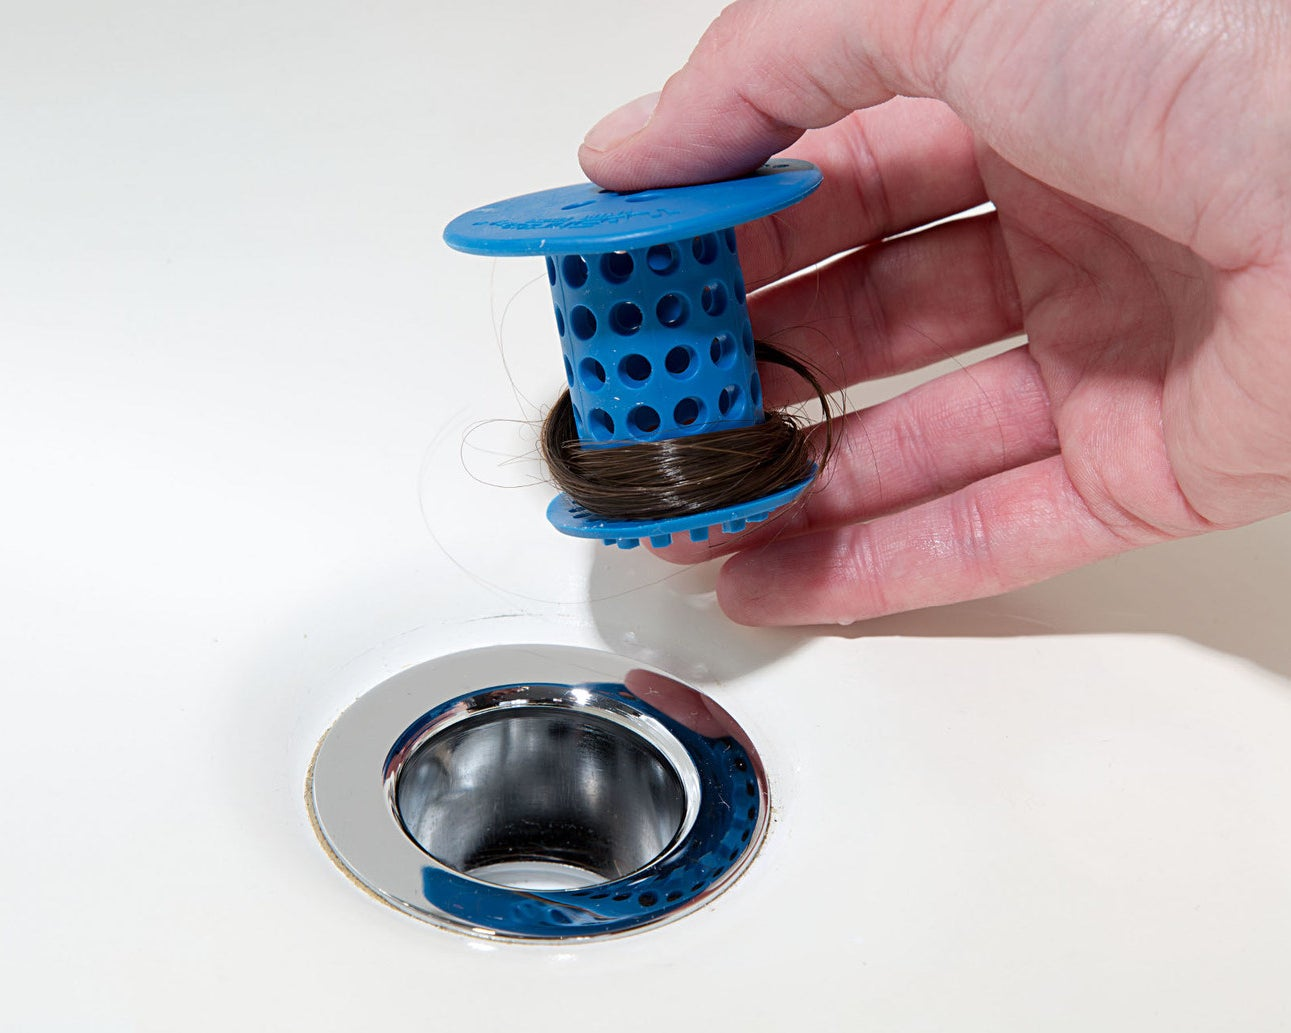 """I recently bought one of these and I can't believe I've waited all these years! I used to have a traditional strainer that would block the water flow as soon as a few hairs got caught in it (and I would have to fish out a clump of hair every five minutes or so). No more! This gadget catches all the hairs (so you don't end up with a clogged drain) and still allows the water to go down. I literally cannot stop talking about it.Promising review: """"I was skeptical about this little rubber strainer, but I needed something to save my drains from the piles of hair that fall out of my head. This thing is amazing! It fit into my standard drain perfectly, and I don't think a single hair slipped by it. It was pretty gross to see how much hair I lost in just one shower, but it was comforting to know it wasn't clogging my drain. Clean up is super easy, too. I just took a tissue and wiped it from top to bottom, grabbing all the hair as the soft rubber strainer released it all easily. Not a hair was caught in it. Best strainer I've ever had."""" —Lawyer For JusticeGet it from Amazon for $12.99 (available in six colors). Also, check out the SinkShroom and the ShowerShroom."""